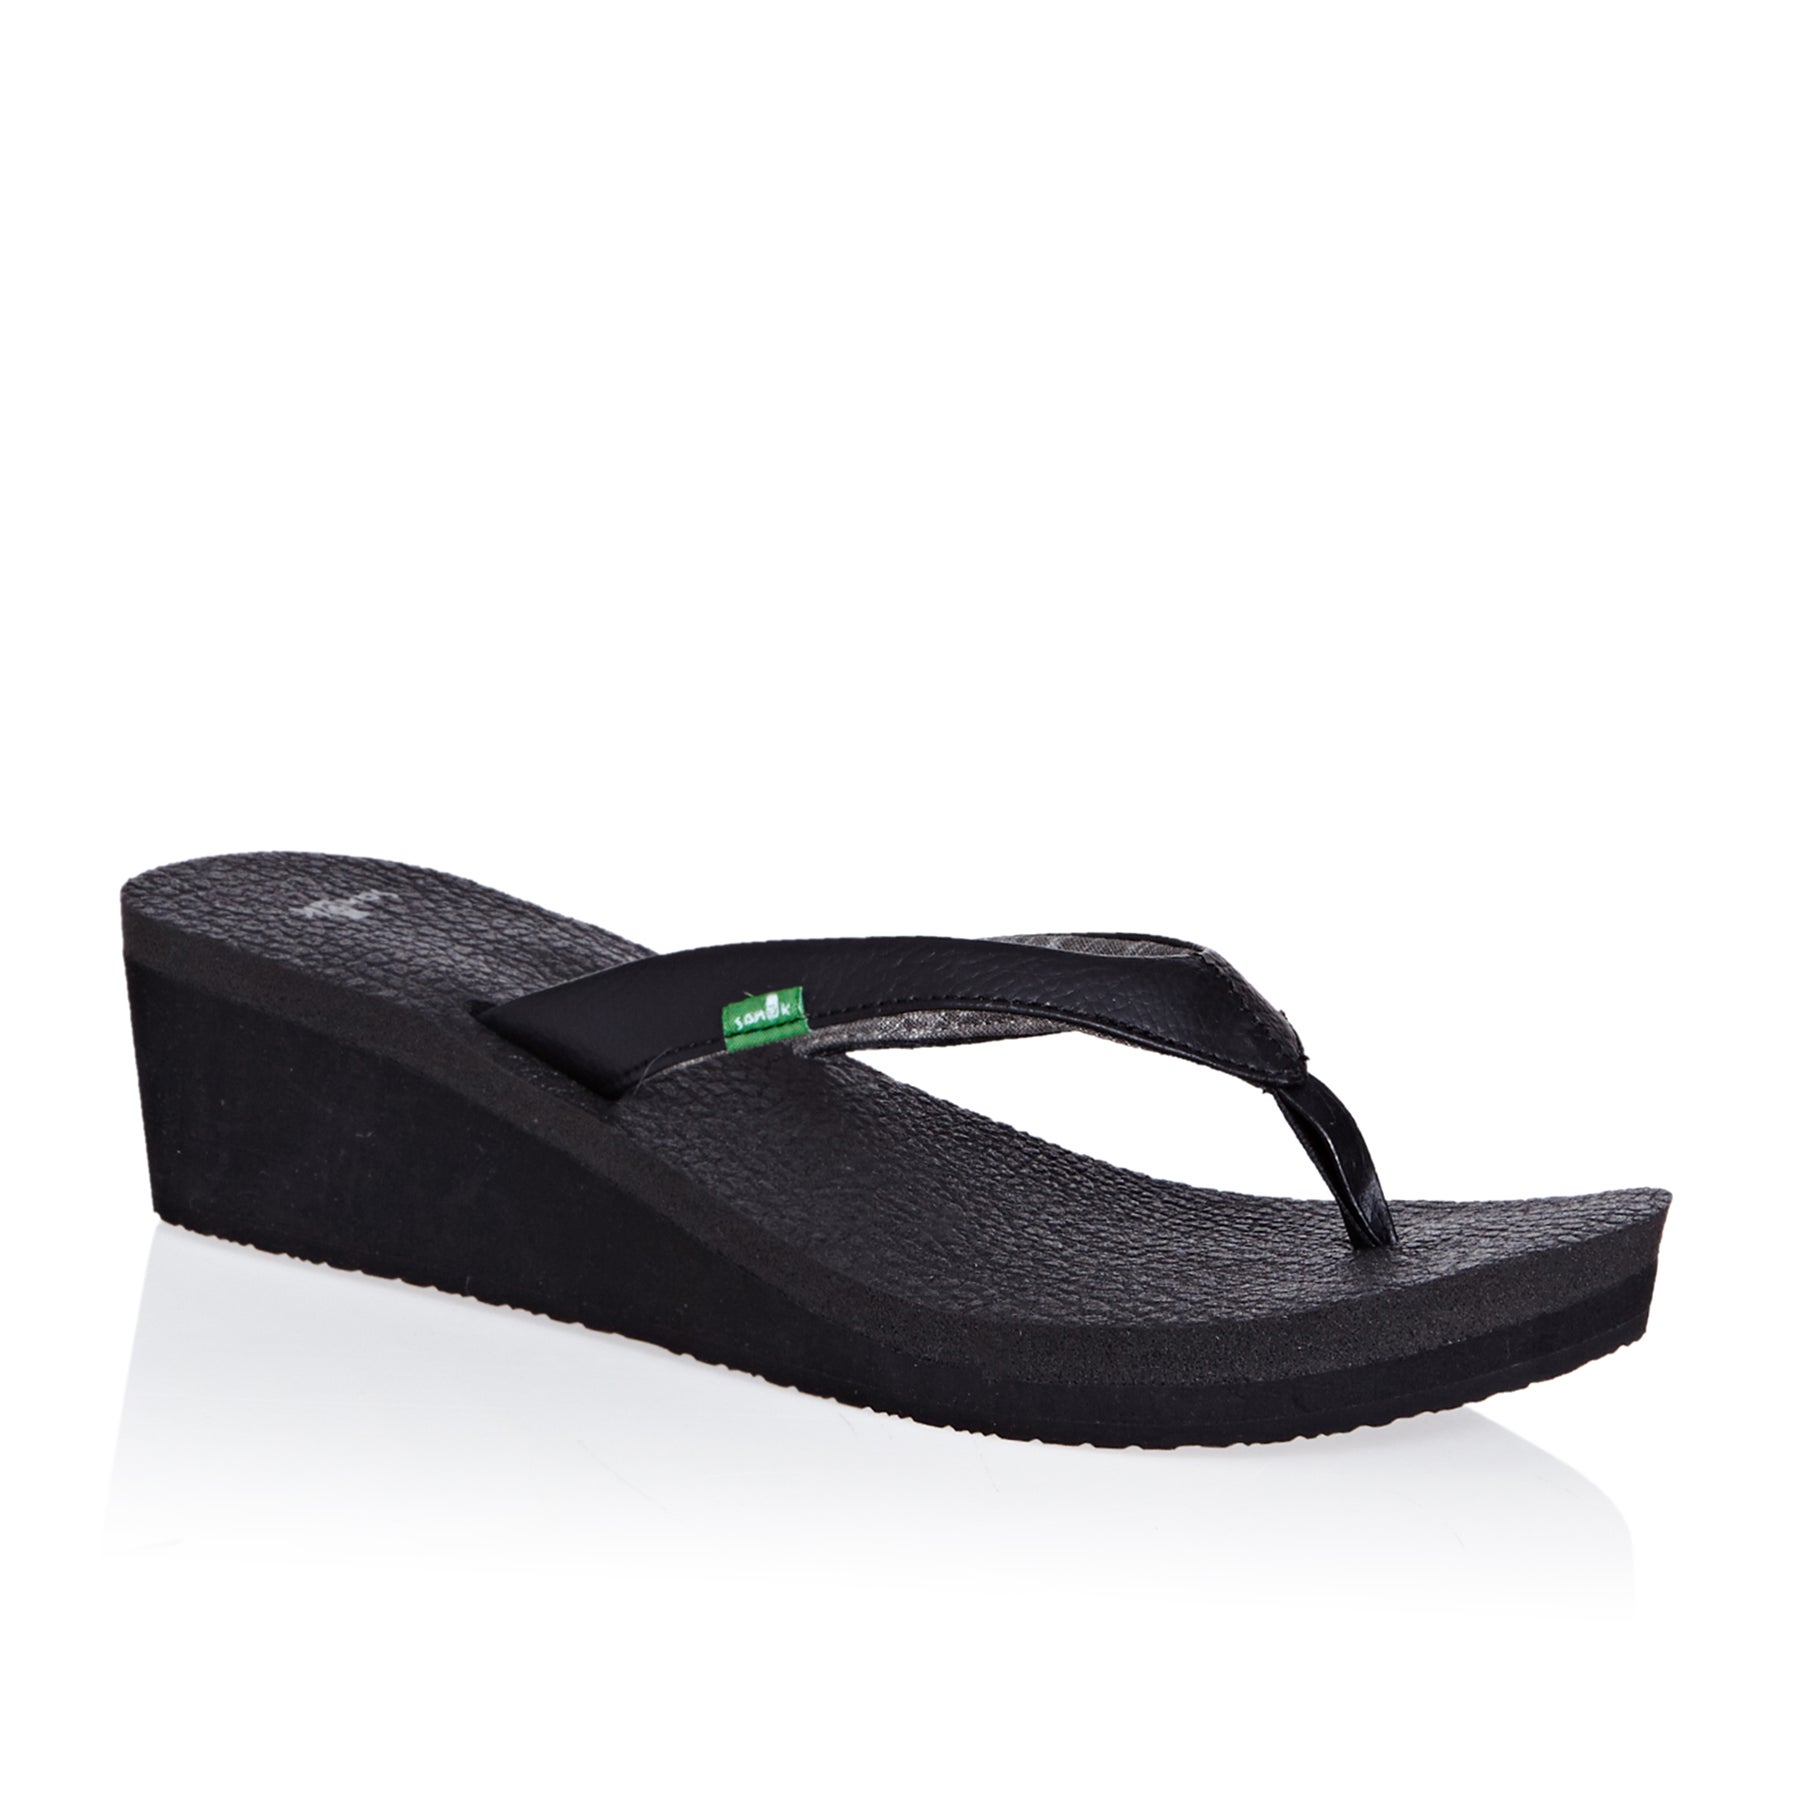 Sanuk Yoga Mat Wedge Ladies Sandals